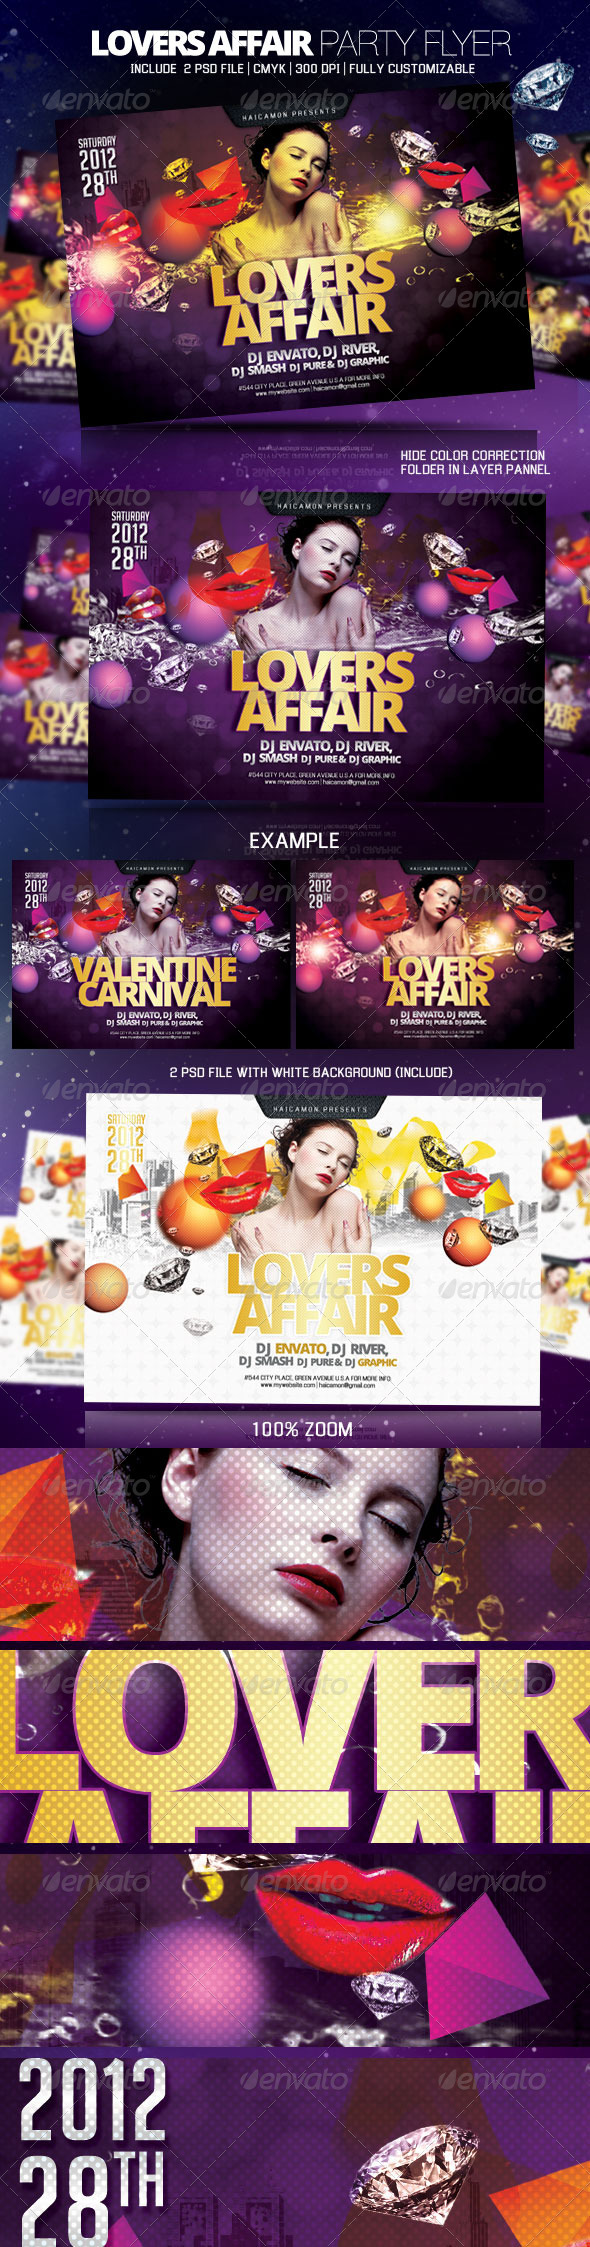 Lovers Affair Party Flyer - Clubs & Parties Events